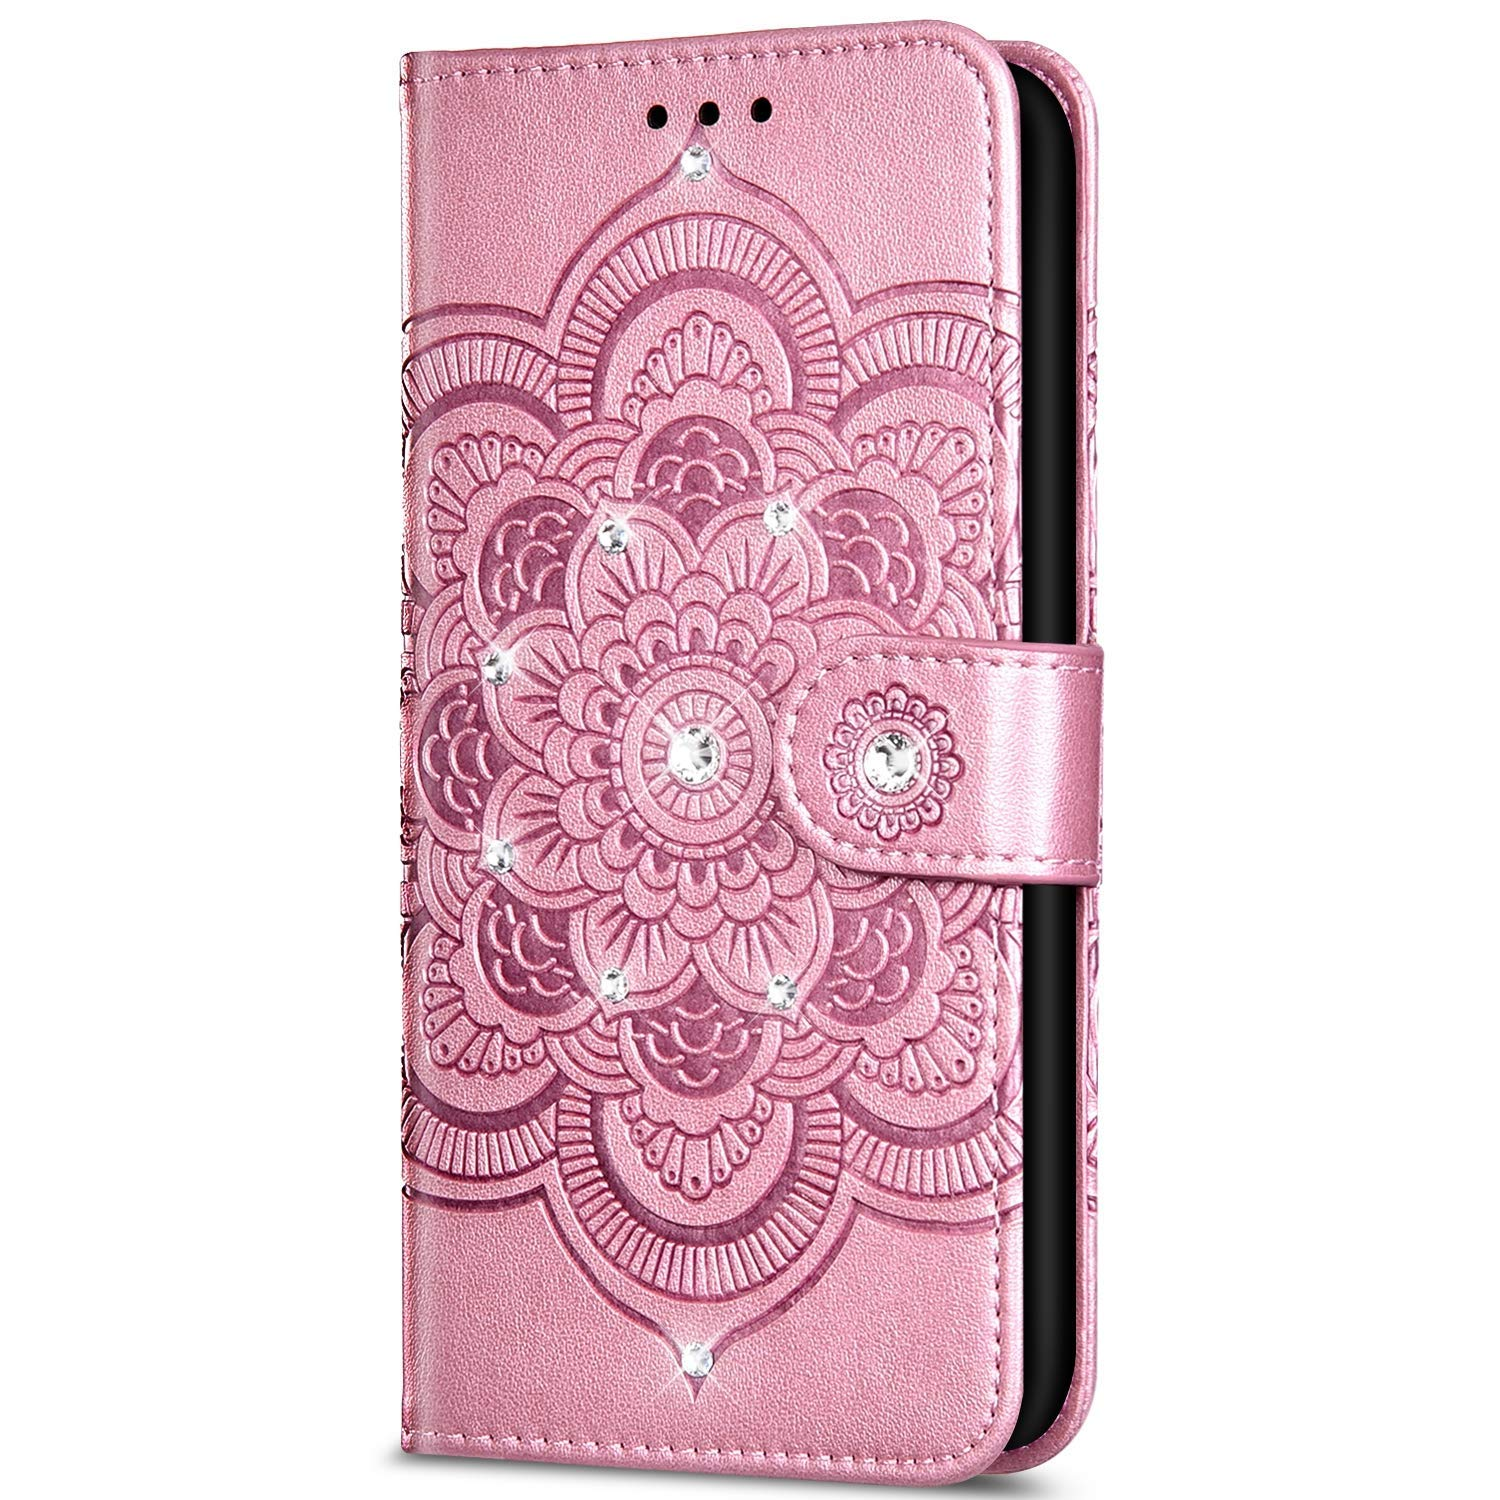 Case for Xiaomi Redmi Note 7 Bling Glitter Rhinestone flower Embossed relief Flip PU Leather Wallet Case with Stand Function[Card Slots] [Magnetic closure]for Xiaomi Redmi Note 7,Rose gold by ikasus